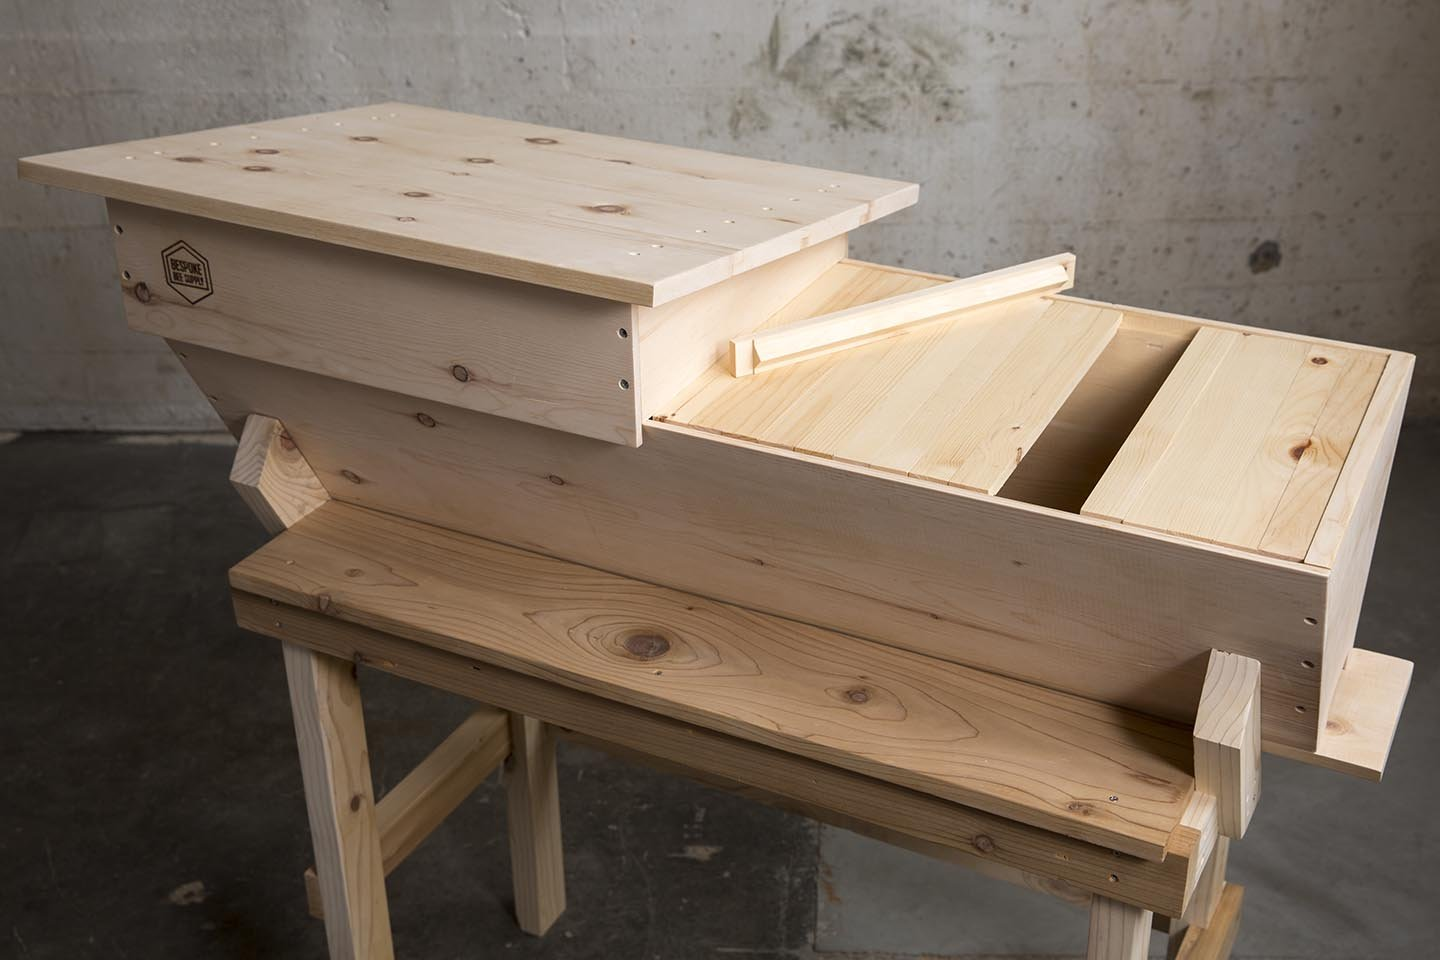 Hive Stand Designs : Top bar hive sugar pine